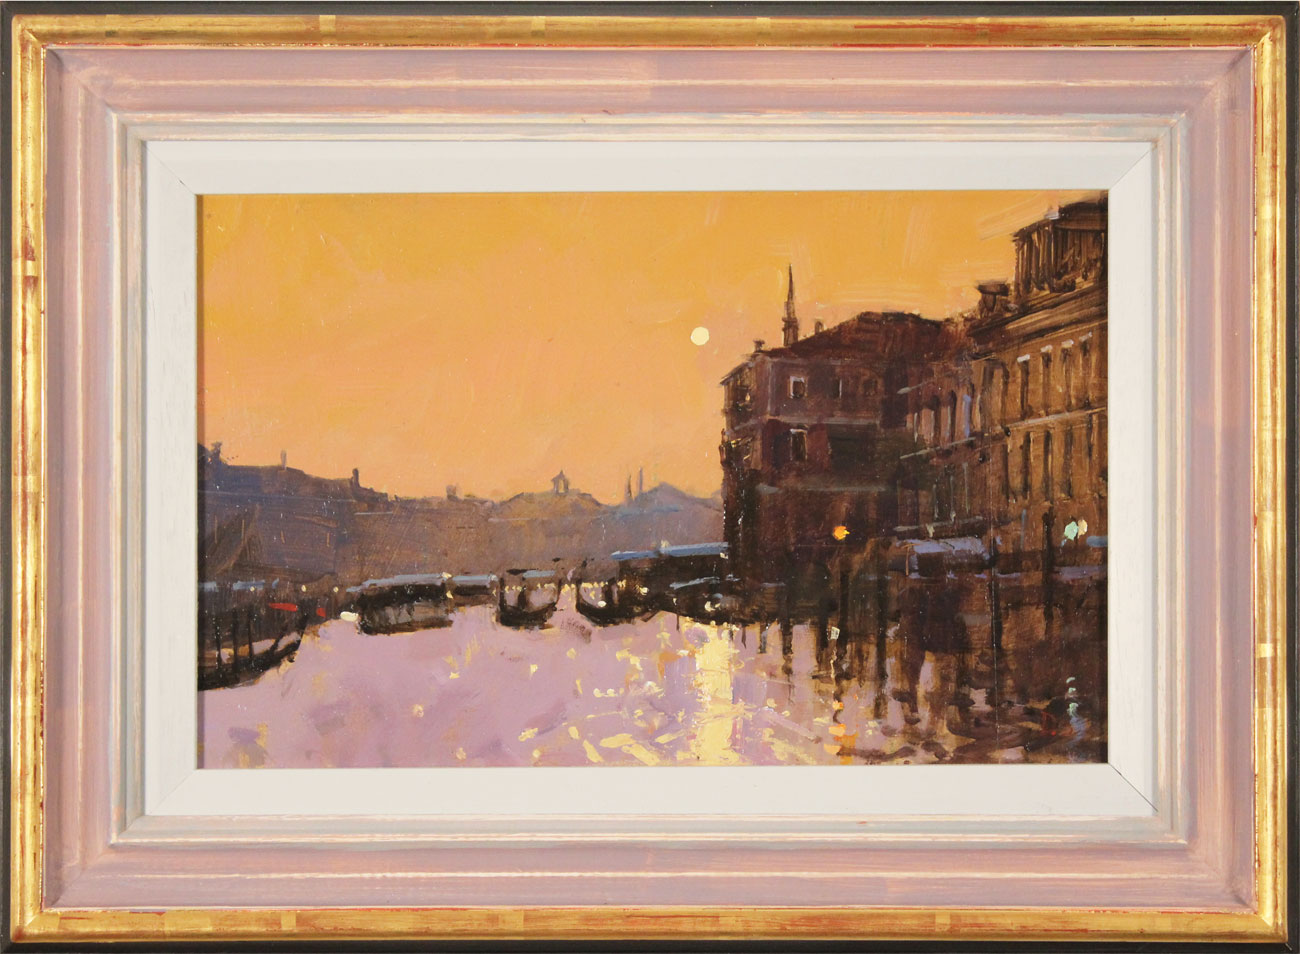 David Sawyer, RBA, Original oil painting on panel, Sunset Reflections, Grand Canal, Venice, click to enlarge